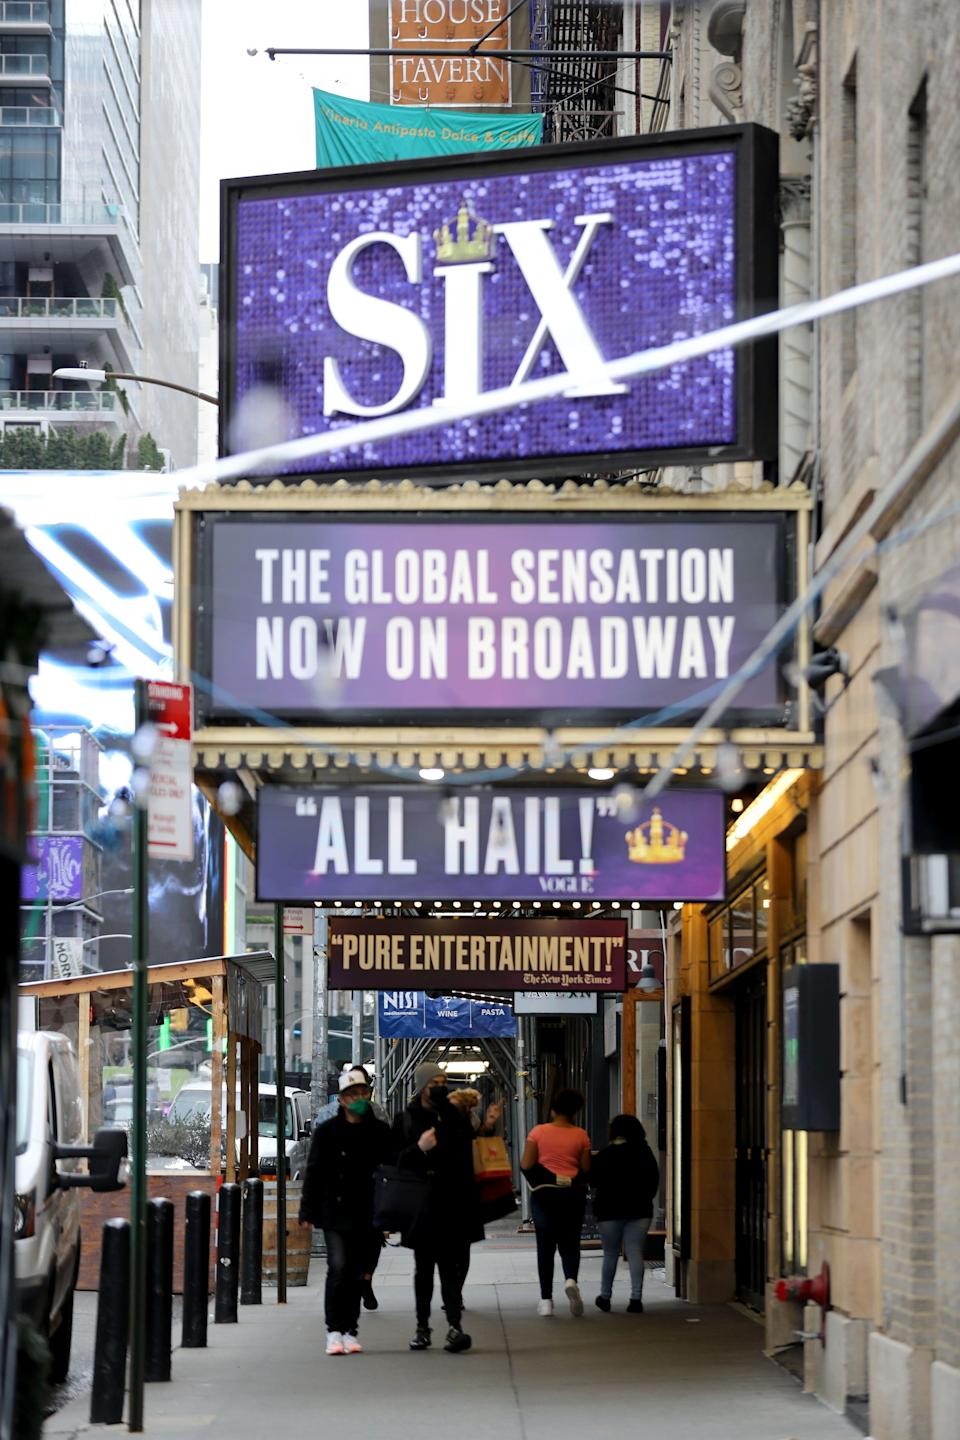 """The Brooks Atkinson Theatre in Manhattan, photographed April 12, 2021, was where the play """"Six"""" was to open before the COVID-19 pandemic. New York Gov. Andrew Cuomo ordered all theaters to close just hours before """"Six"""" opening night performance."""